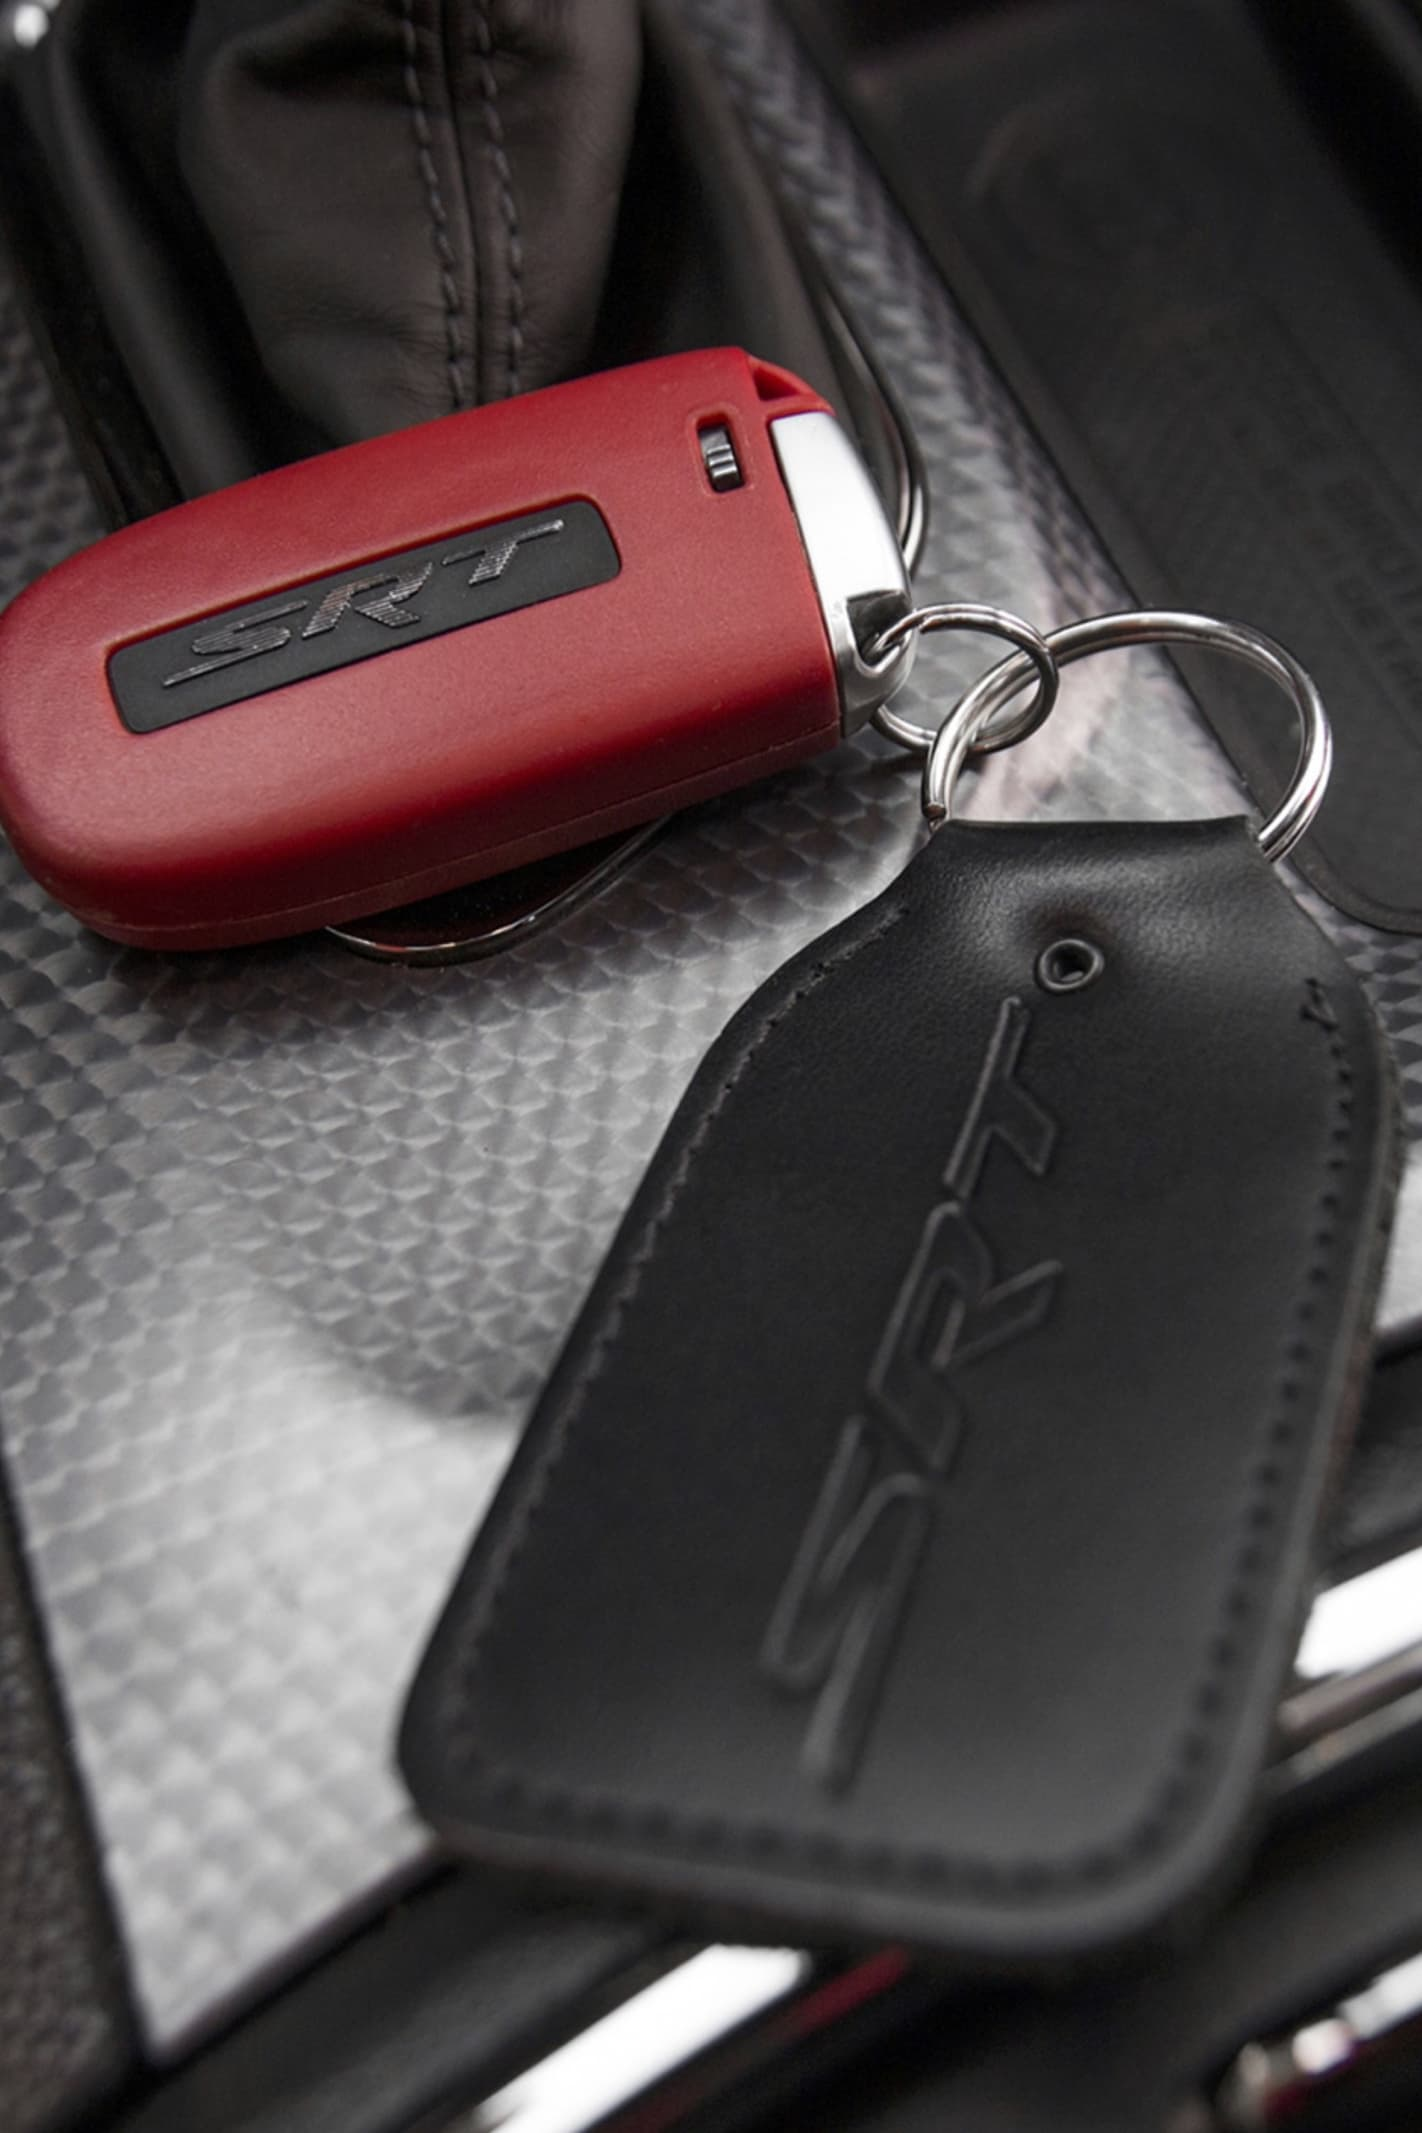 You get two keys for the Dodge Charger Hellcat, a black and a red one. The black one does not release all the power resources of the car but limits the power to 507. The red, on the other hand, gives you access to all 717 horses.